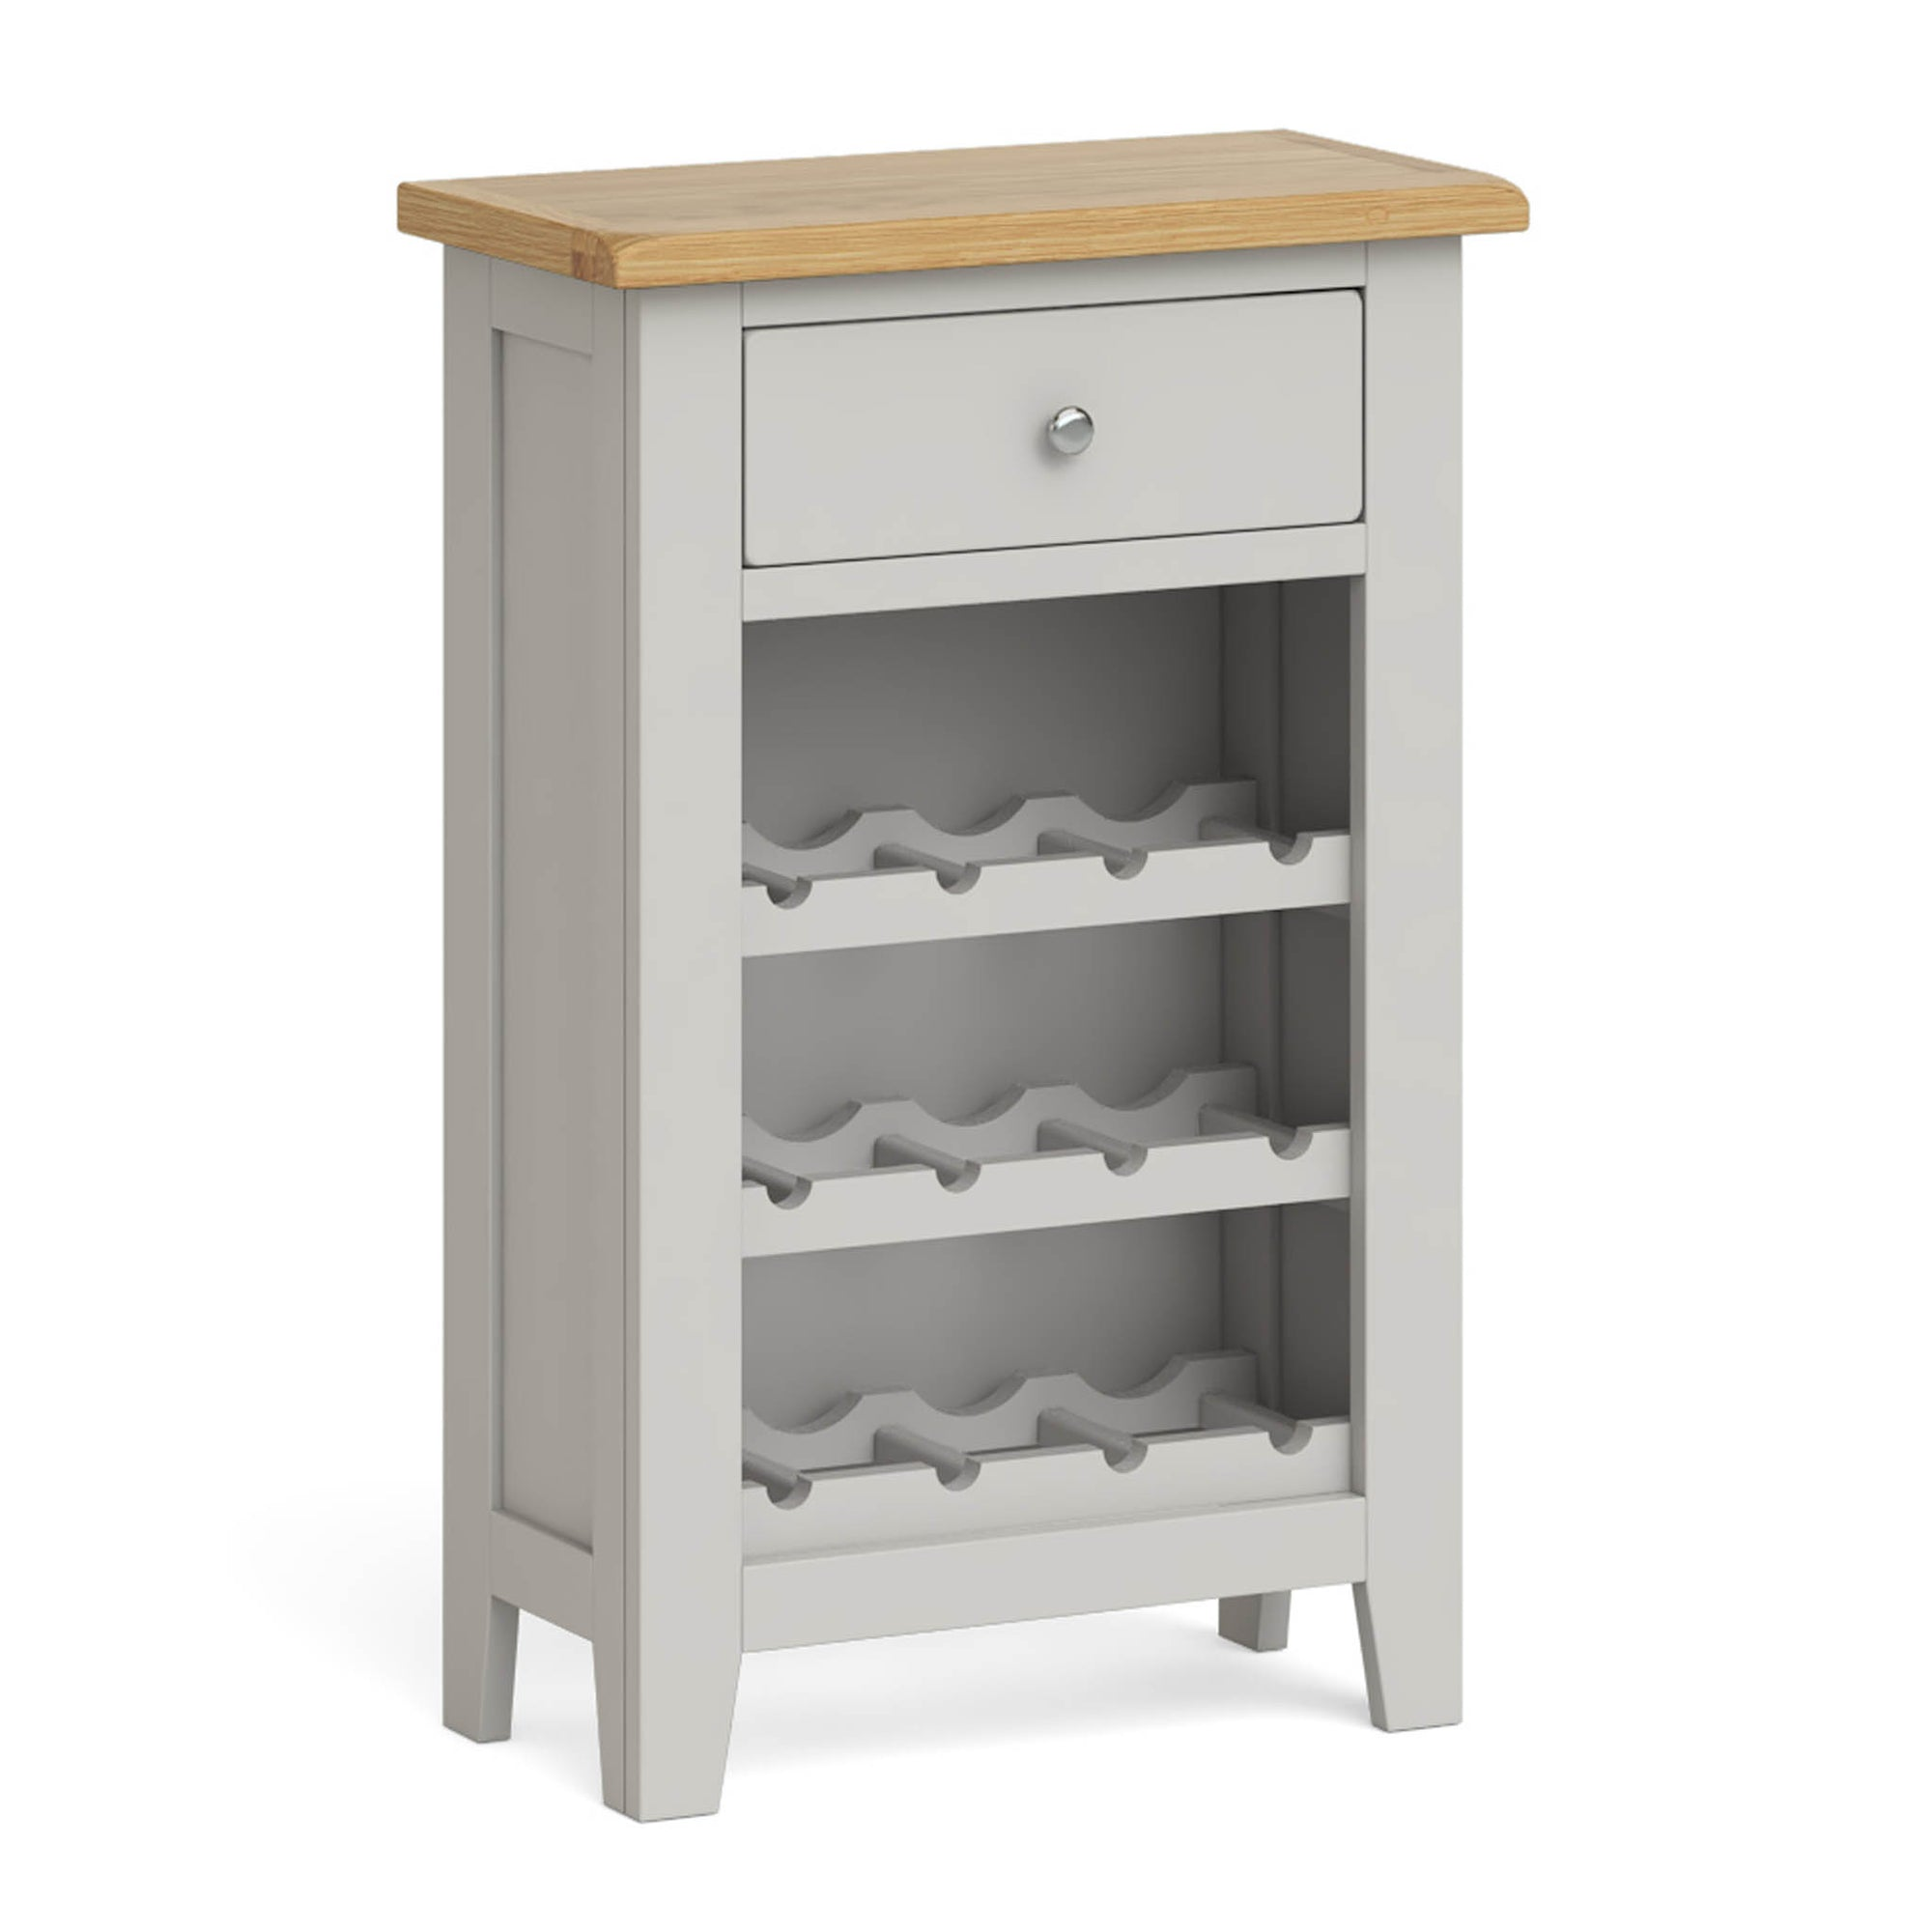 Lundy Grey Wine Rack Cabinet by Roseland Furniture